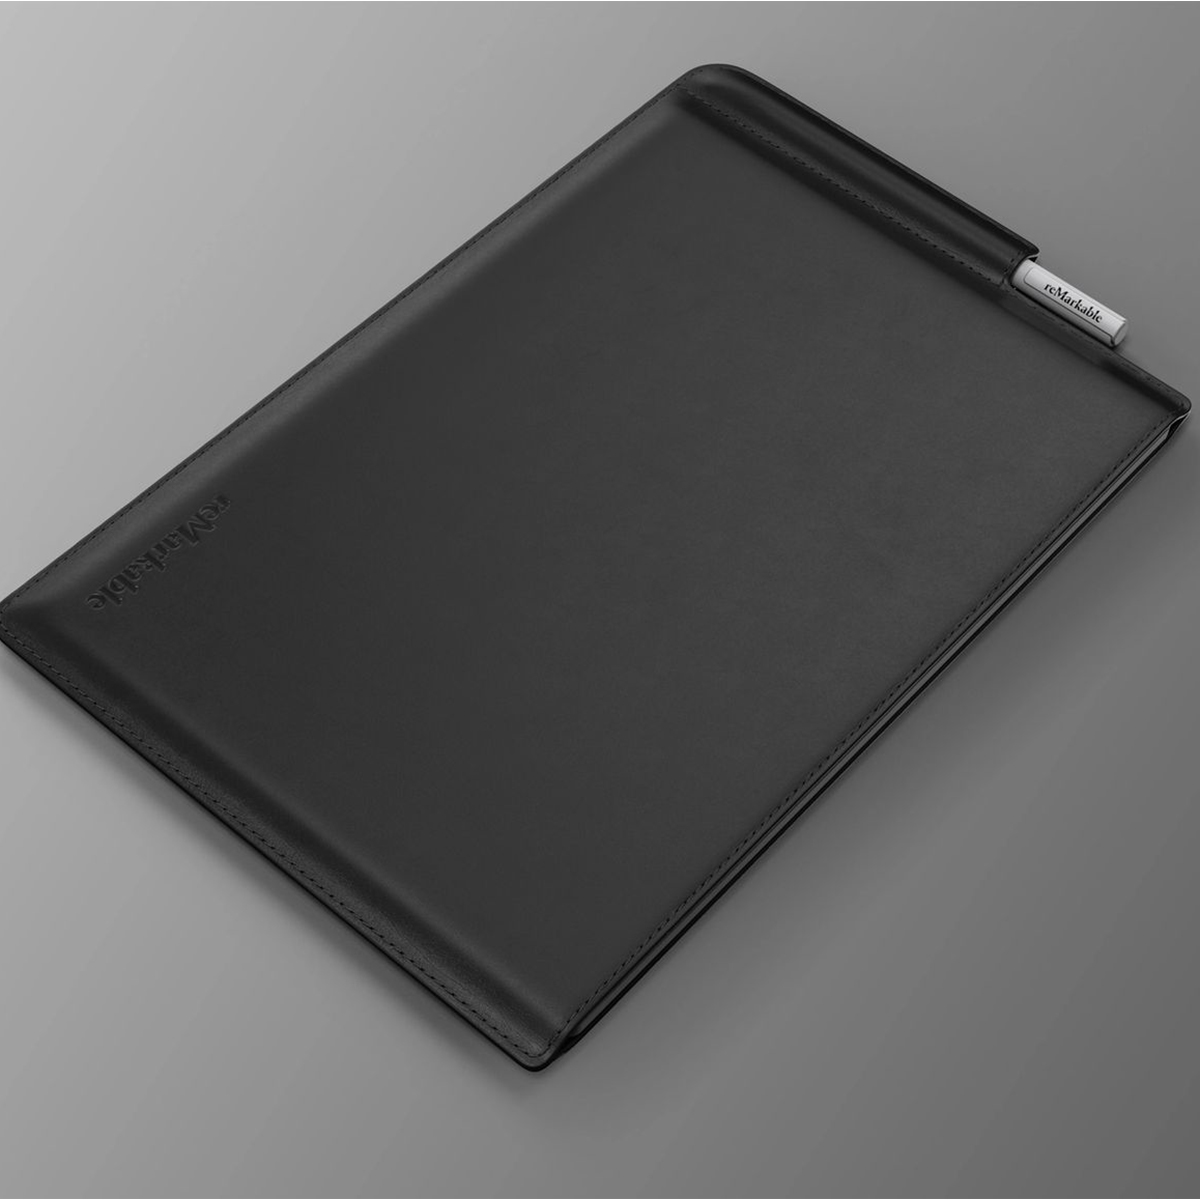 ReMarkable Book Folio Premium Leather Black